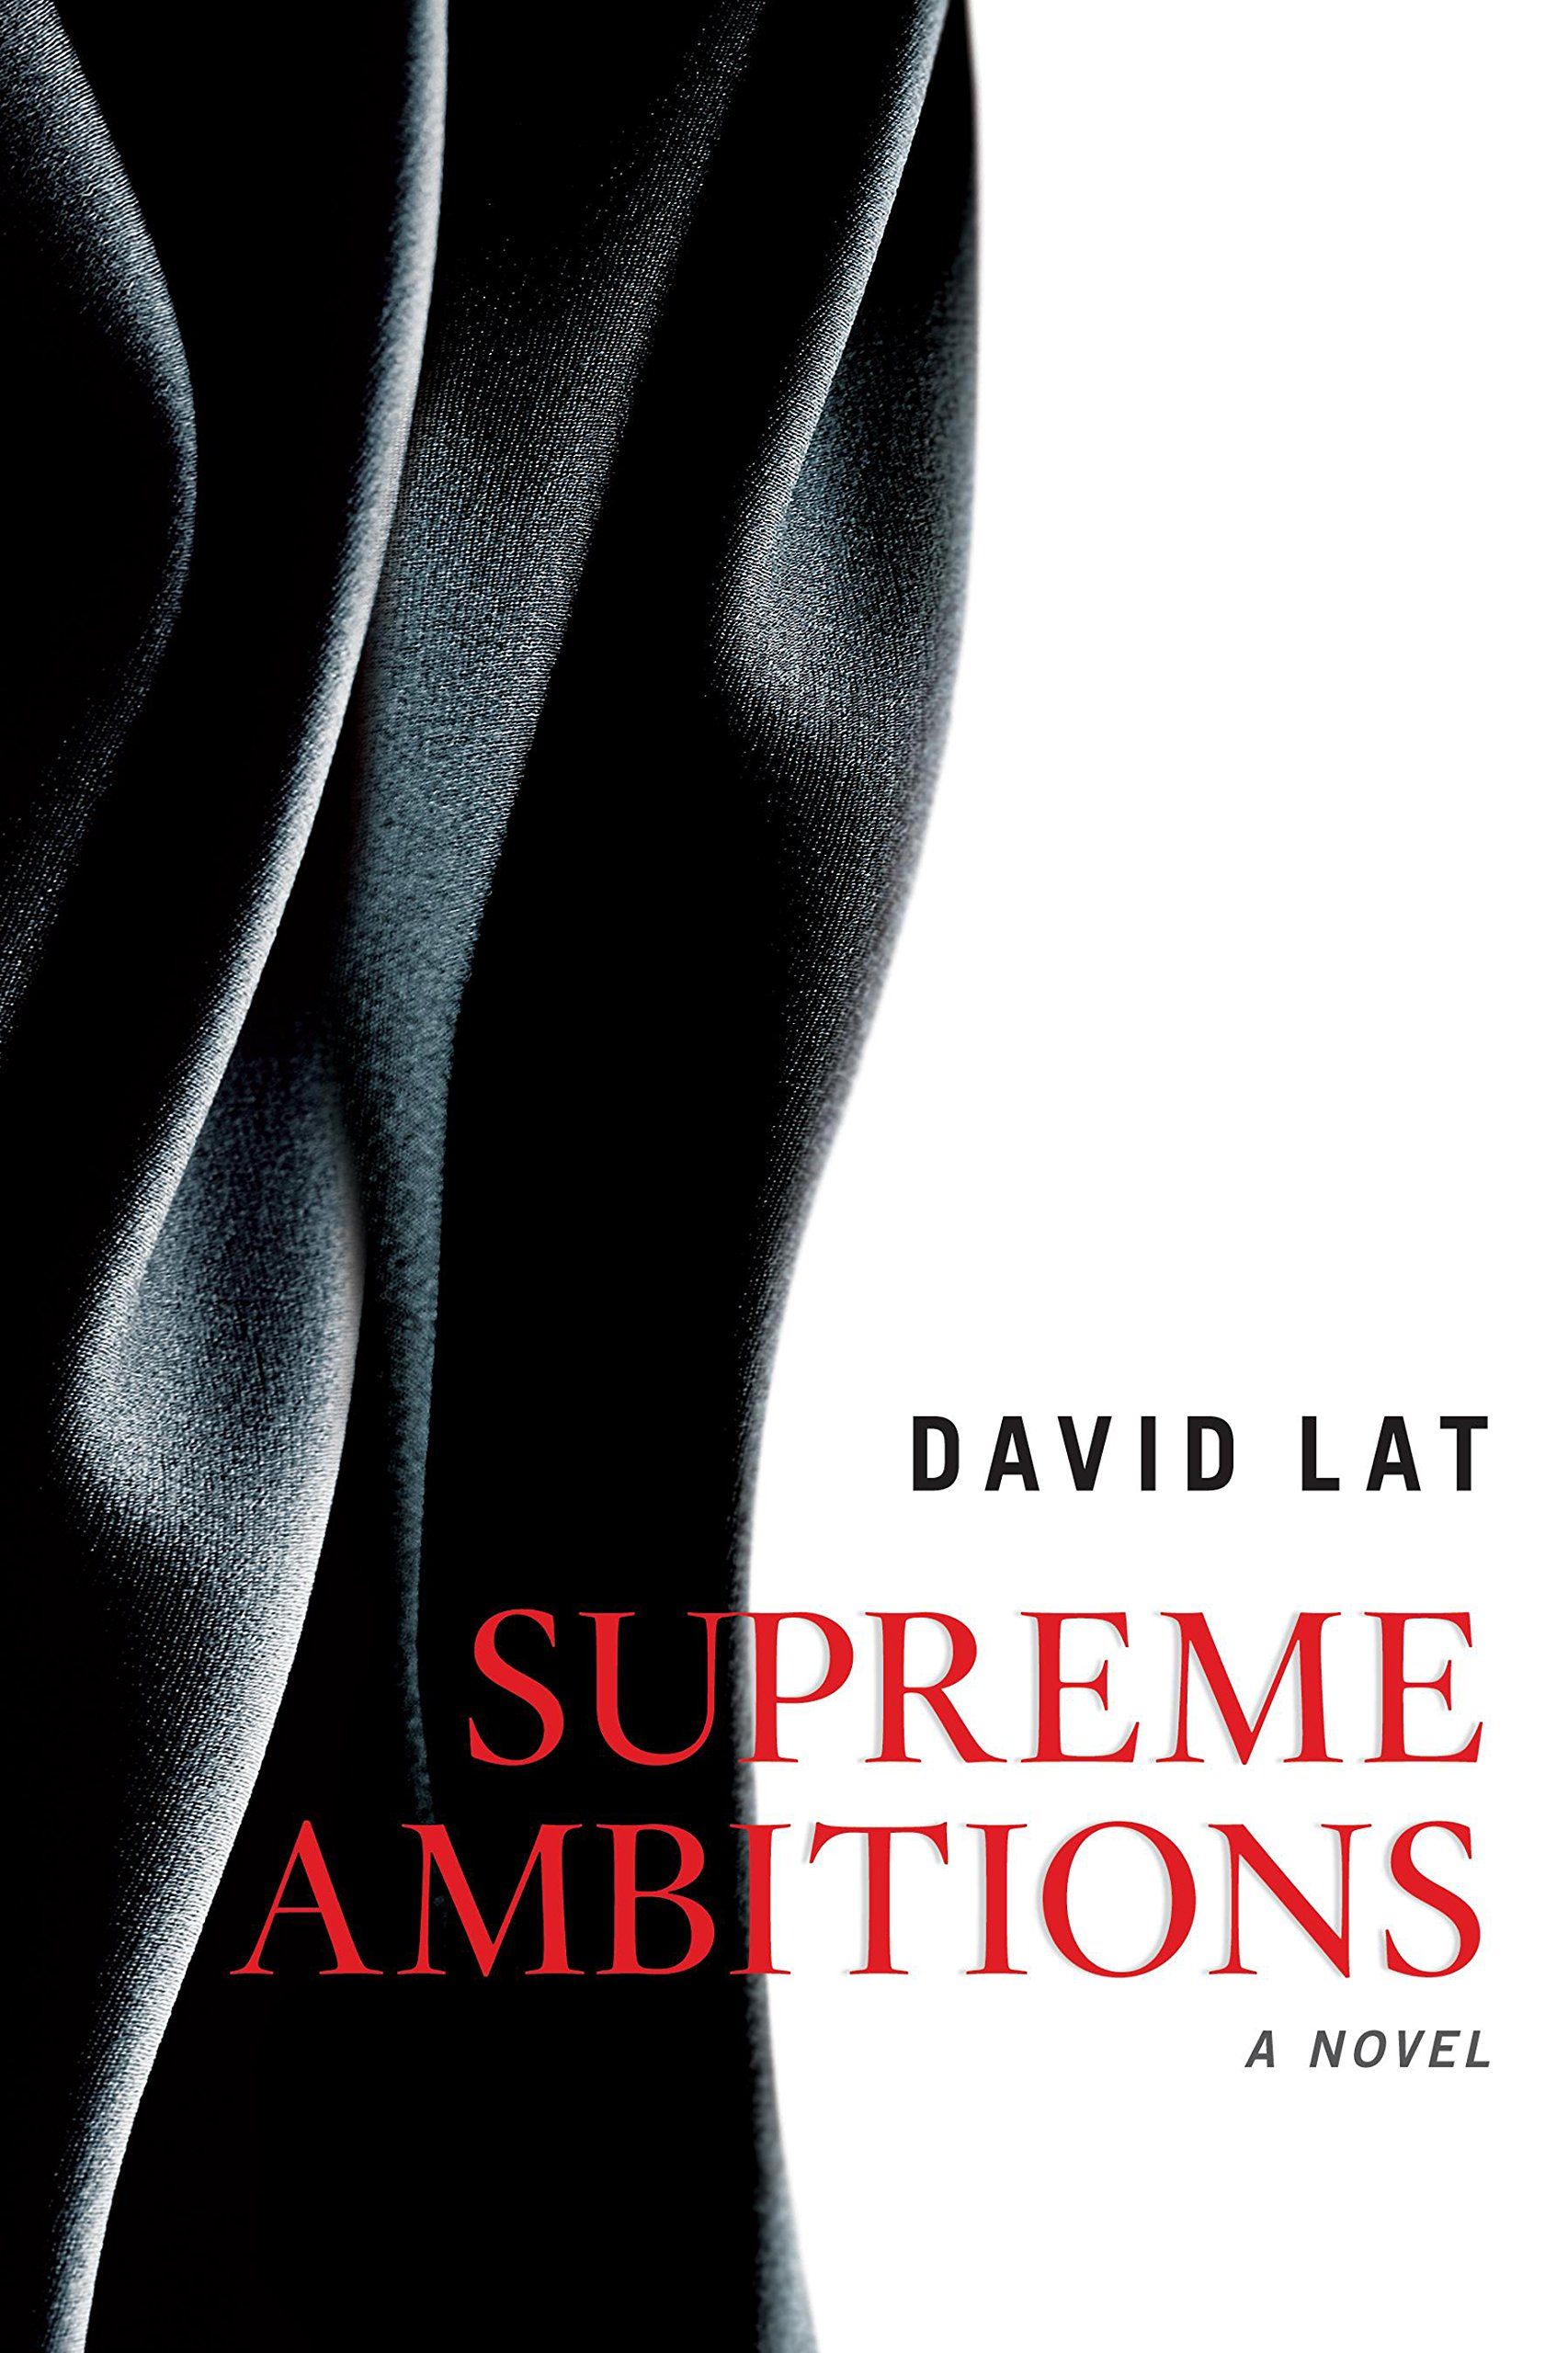 Book Review: Supreme Ambitions